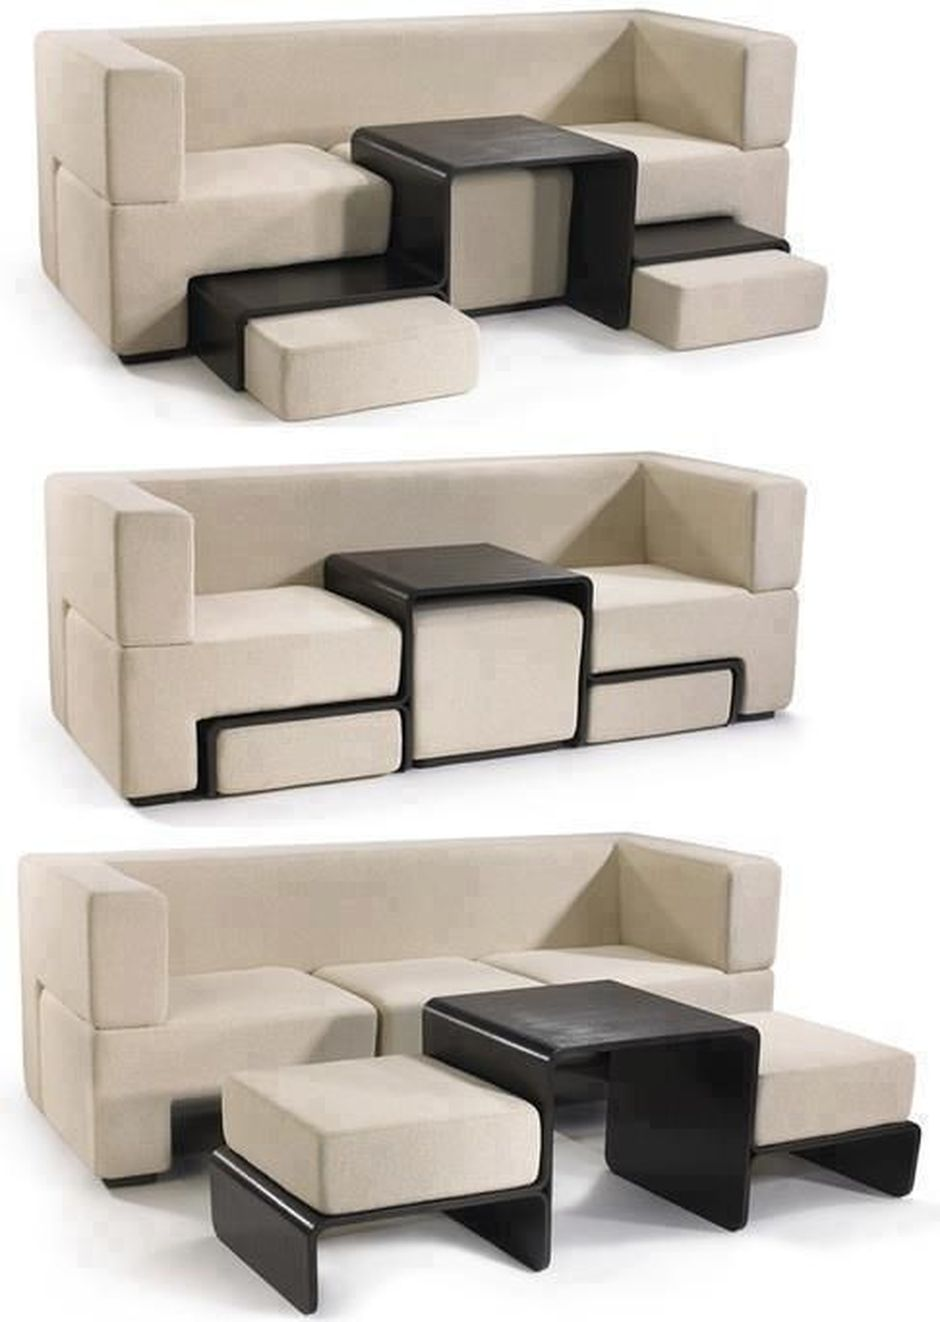 Cool Modular And Convertible Sofa Design For Small Living Room 29 - Hoommy.com